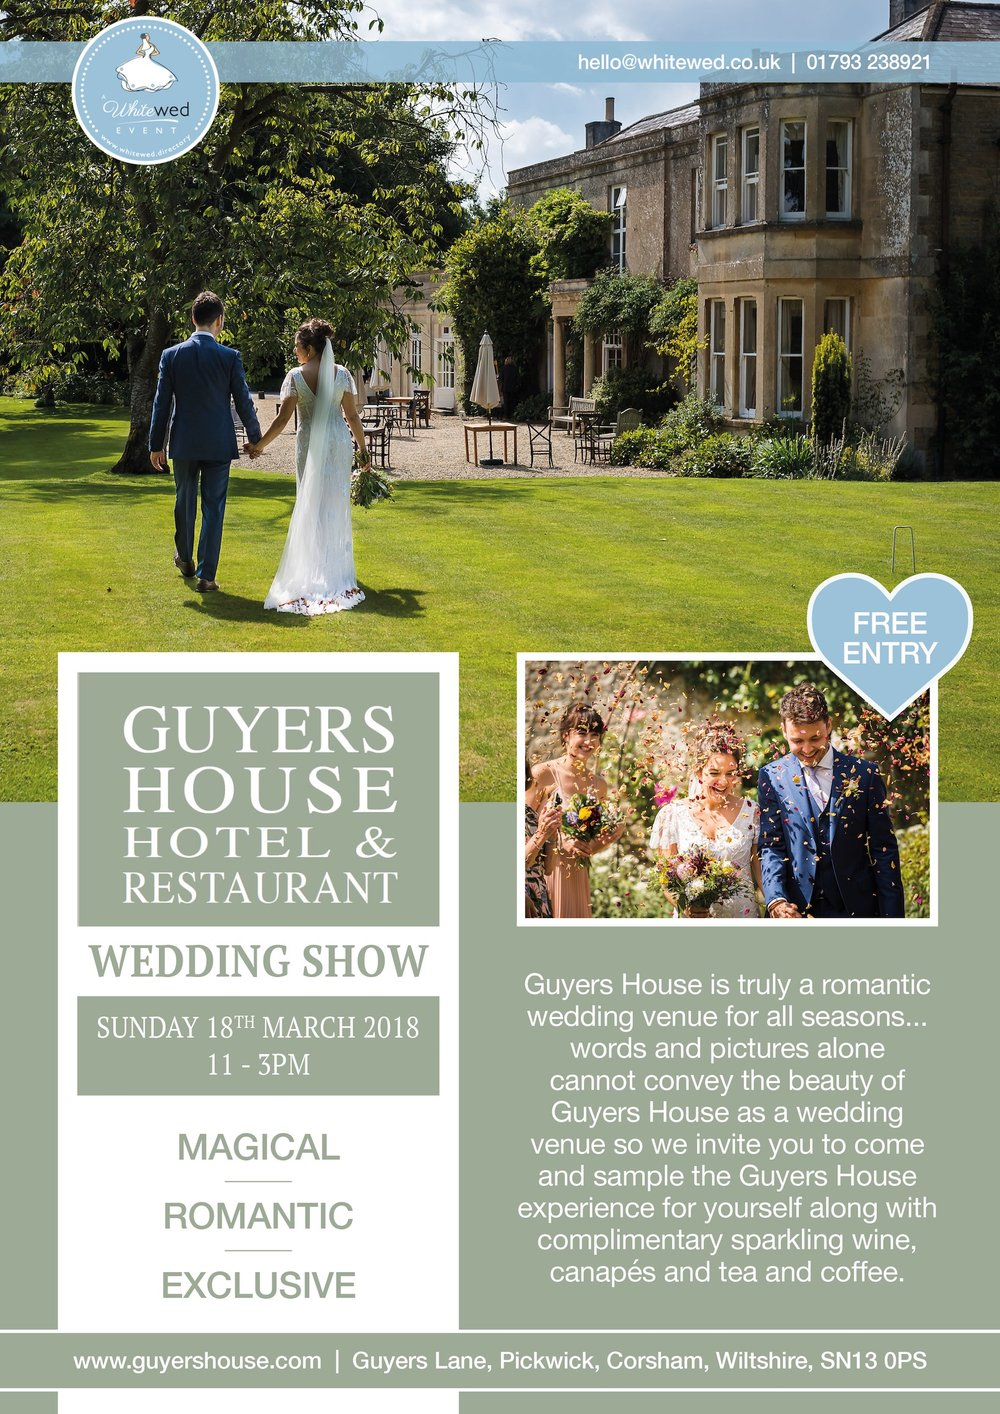 Guyers House Wedding Show Poster 18.03.18.jpg